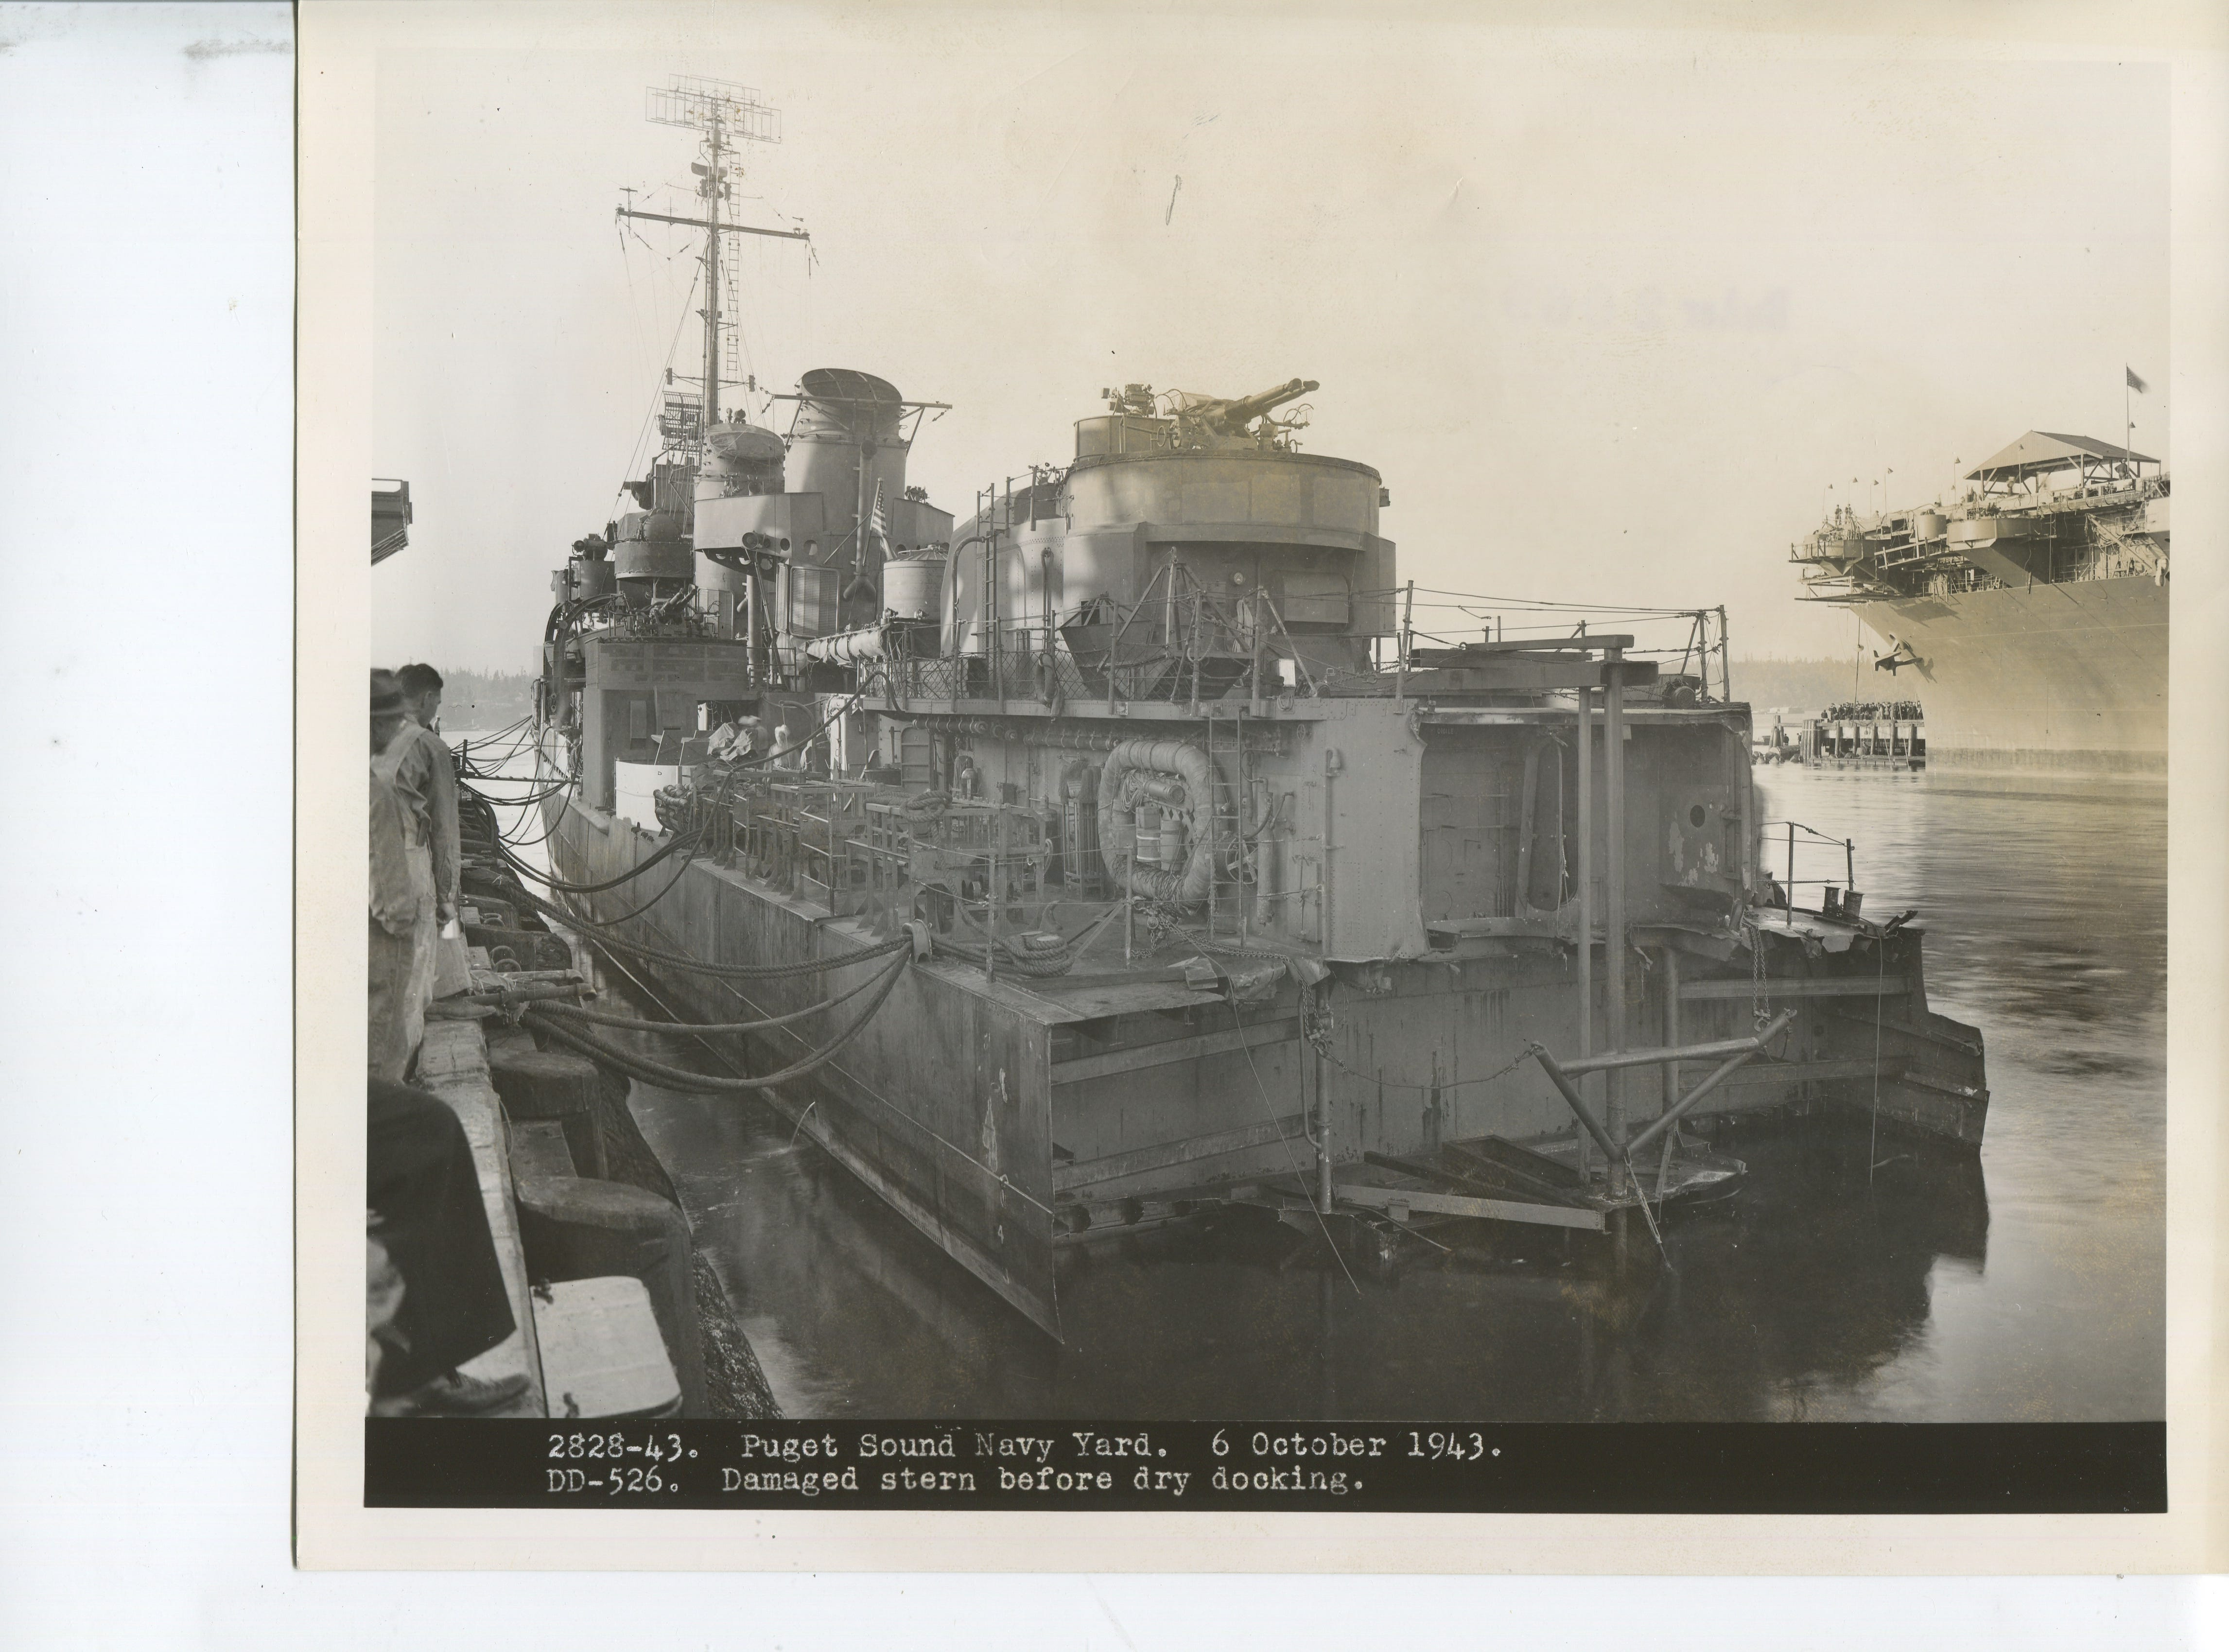 This historical image shows the stern damage to the USS Abner Read before it is dry-docked for repairs in the early 1940s.